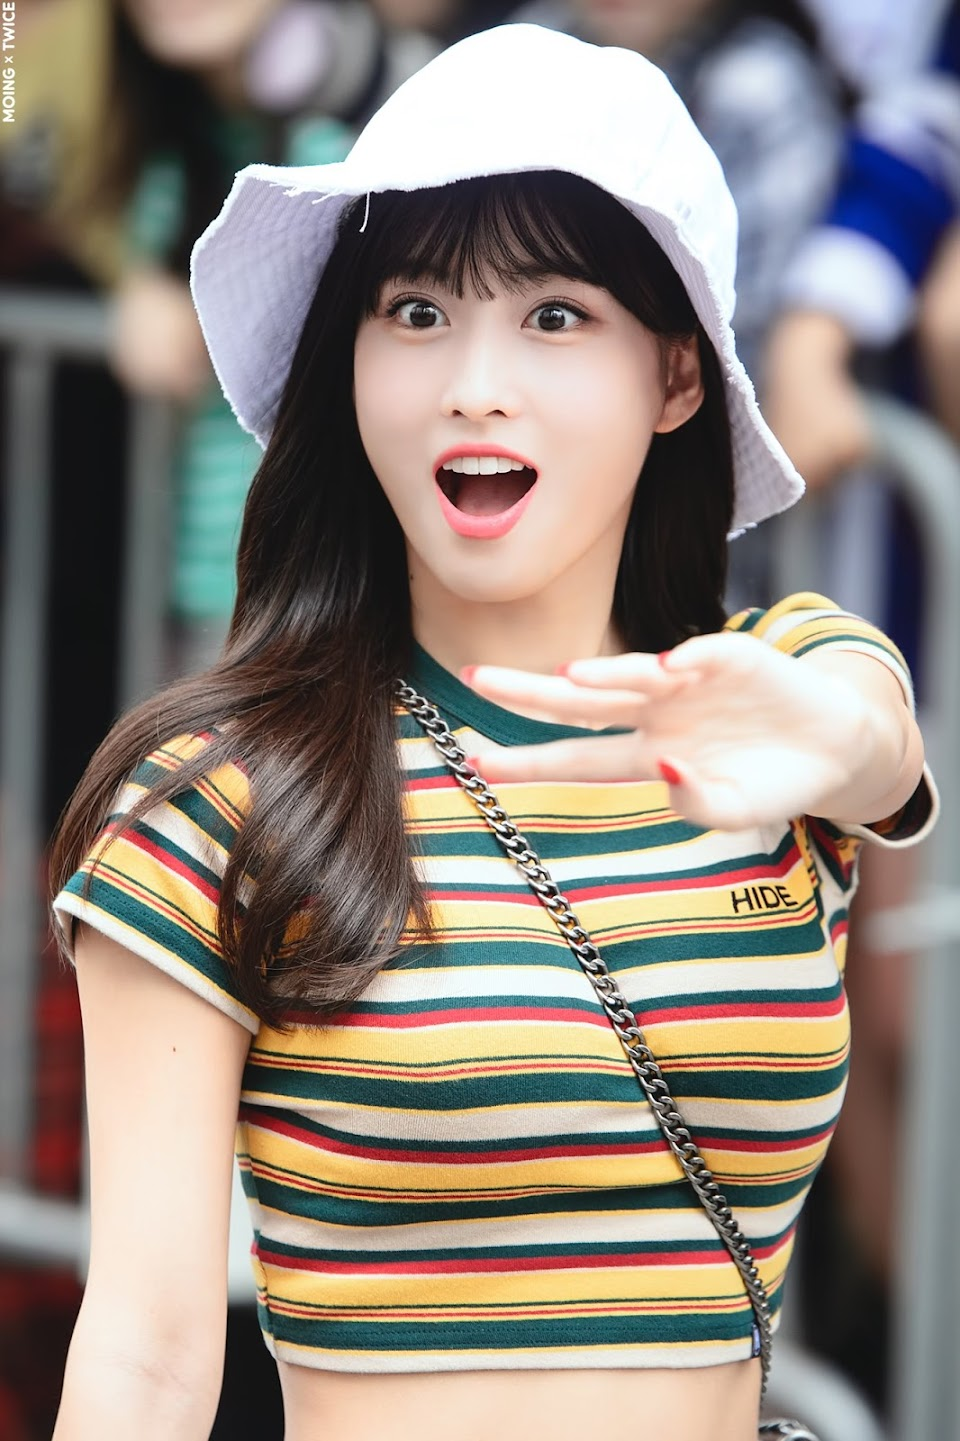 momo shocked